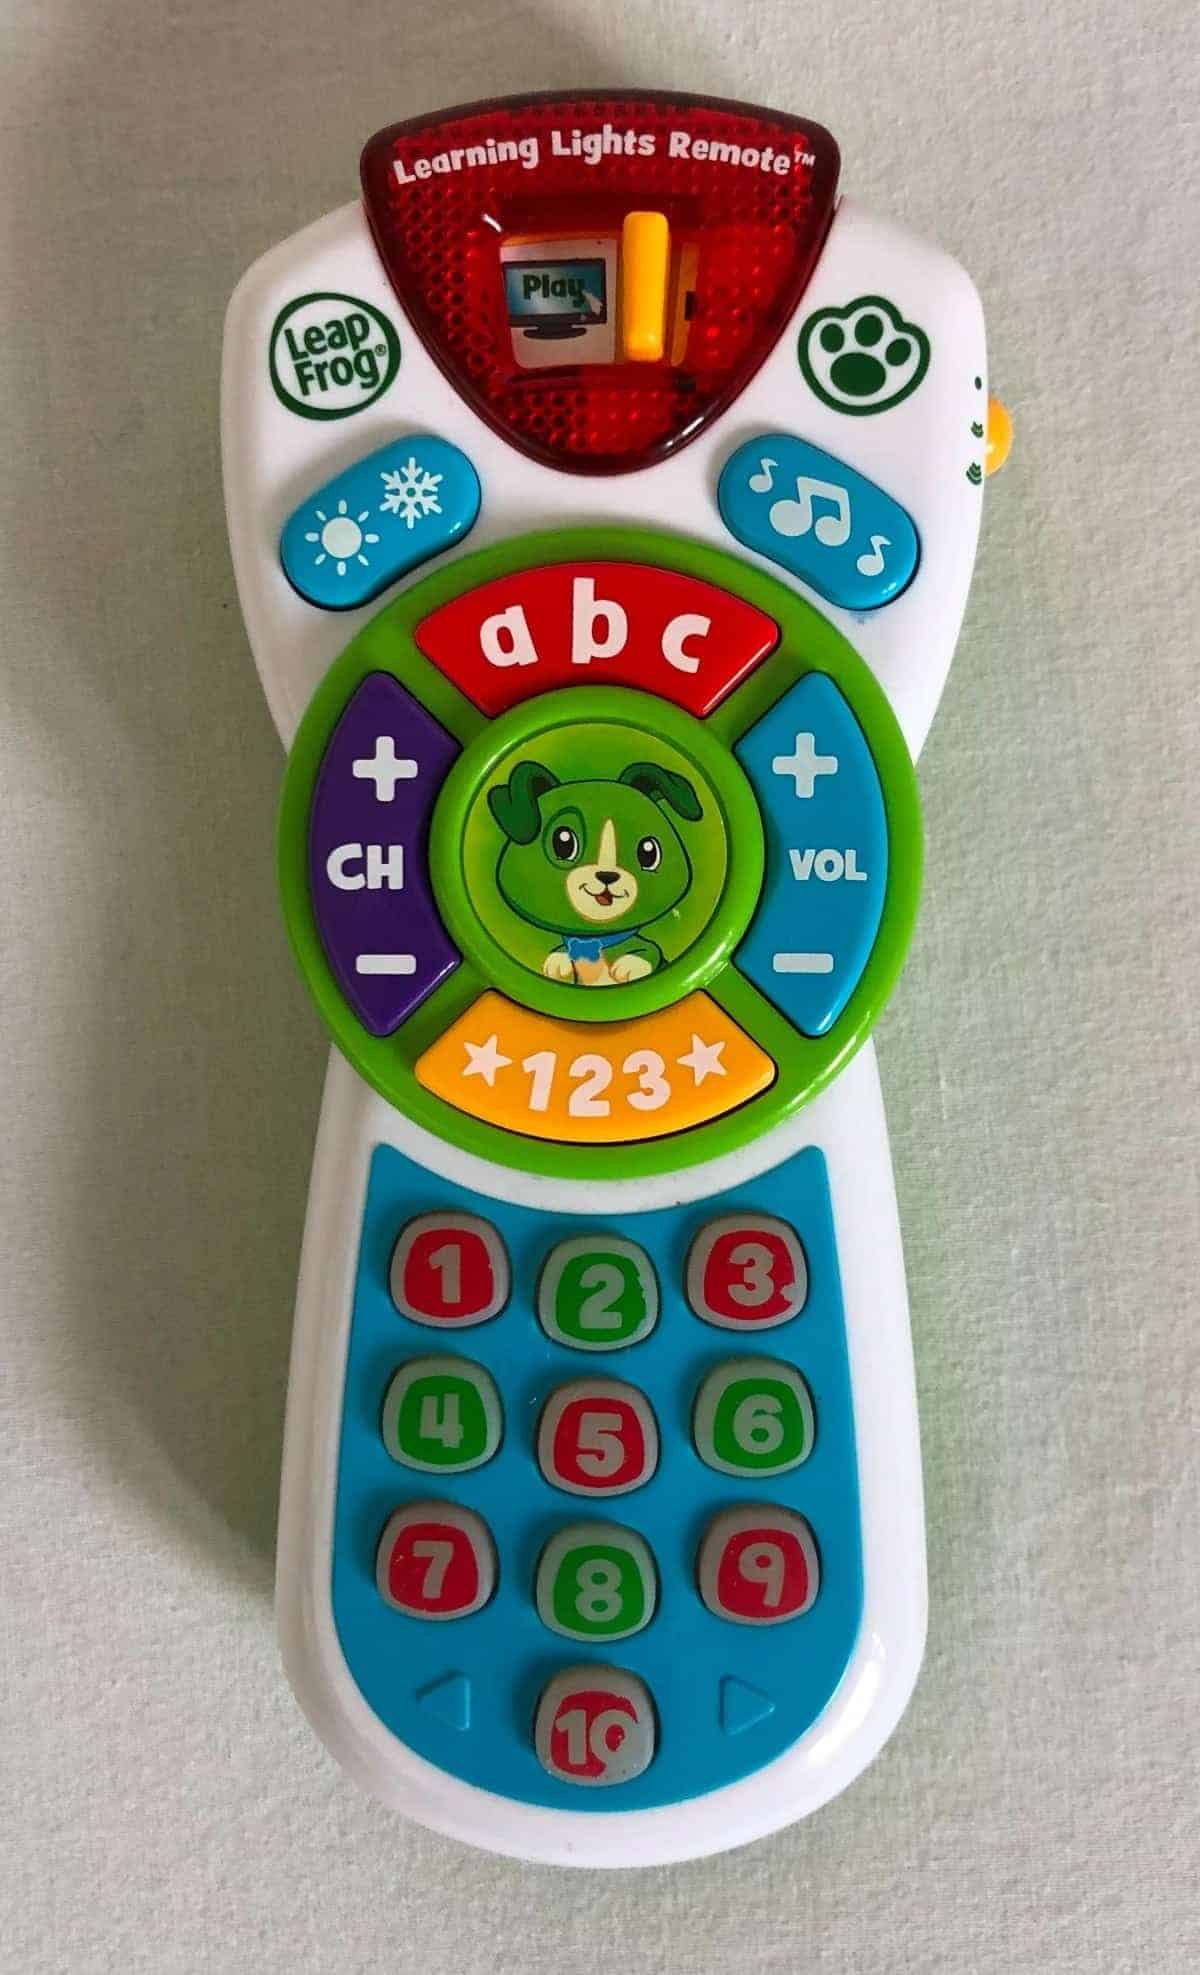 Scout`s Learning Lights Remote